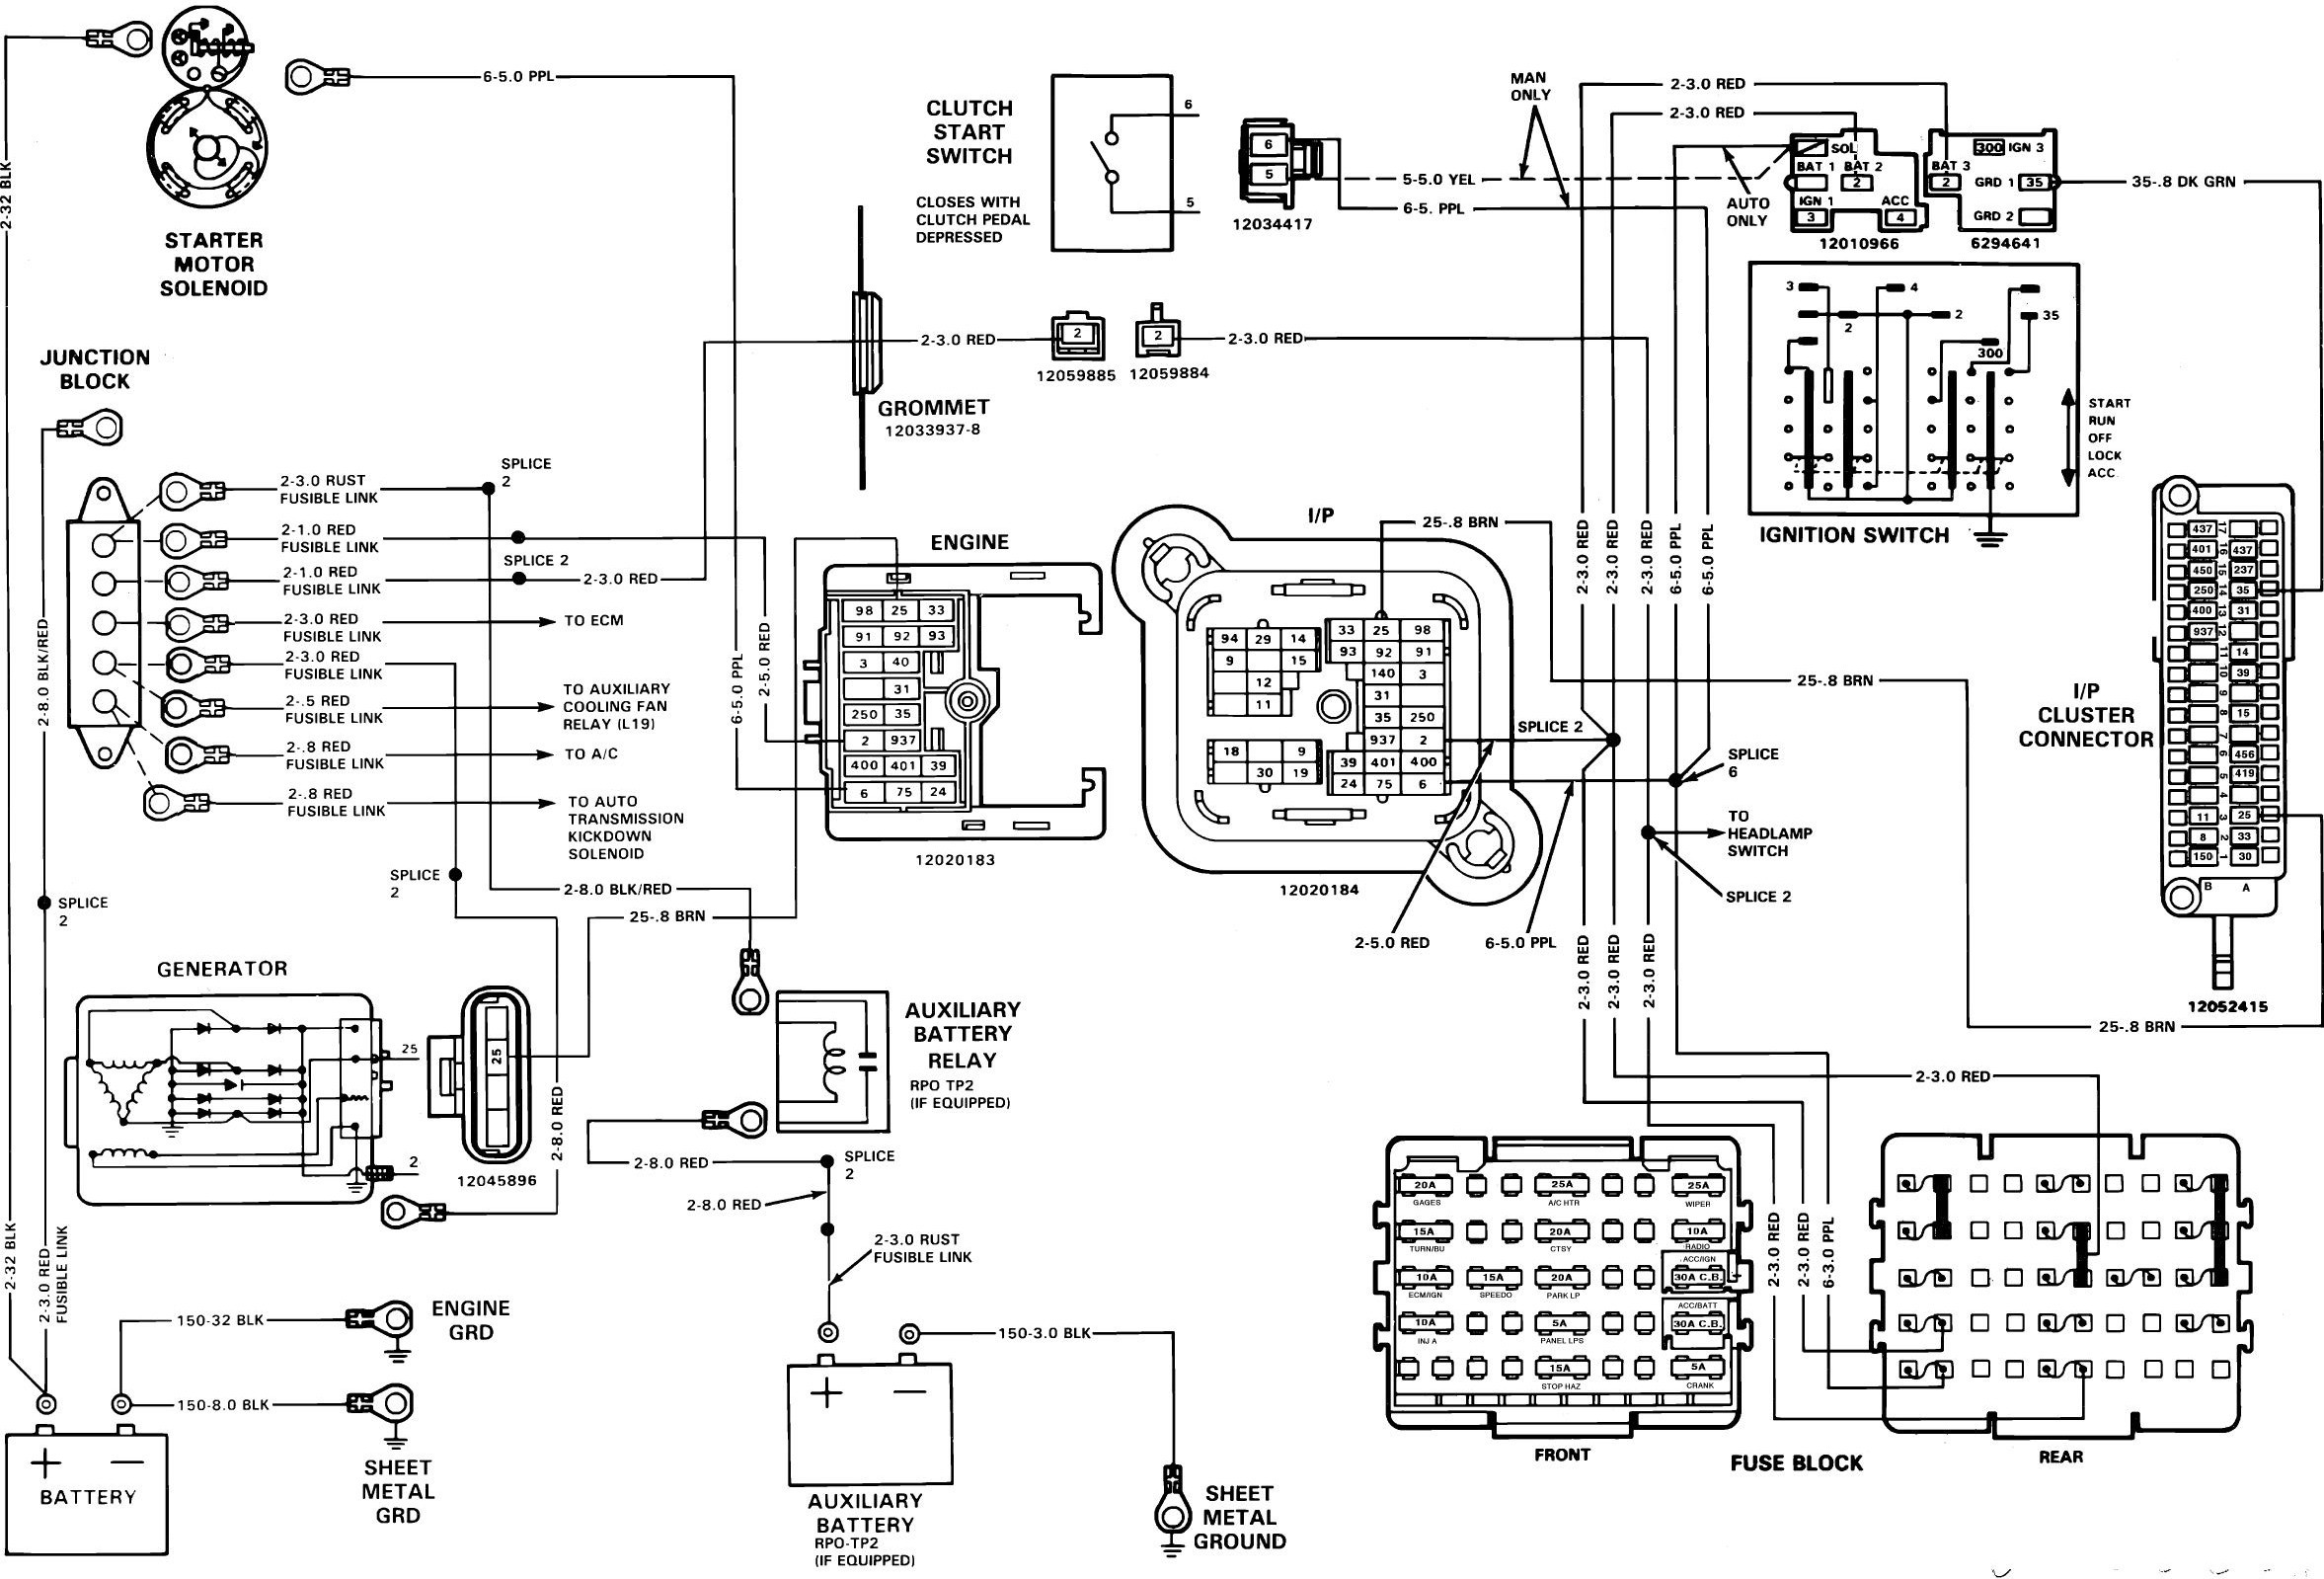 1989 gmc headlight wiring diagrams | wiring library 1989 gmc sierra horn diagram 1989 gmc sierra wiring diagram #1